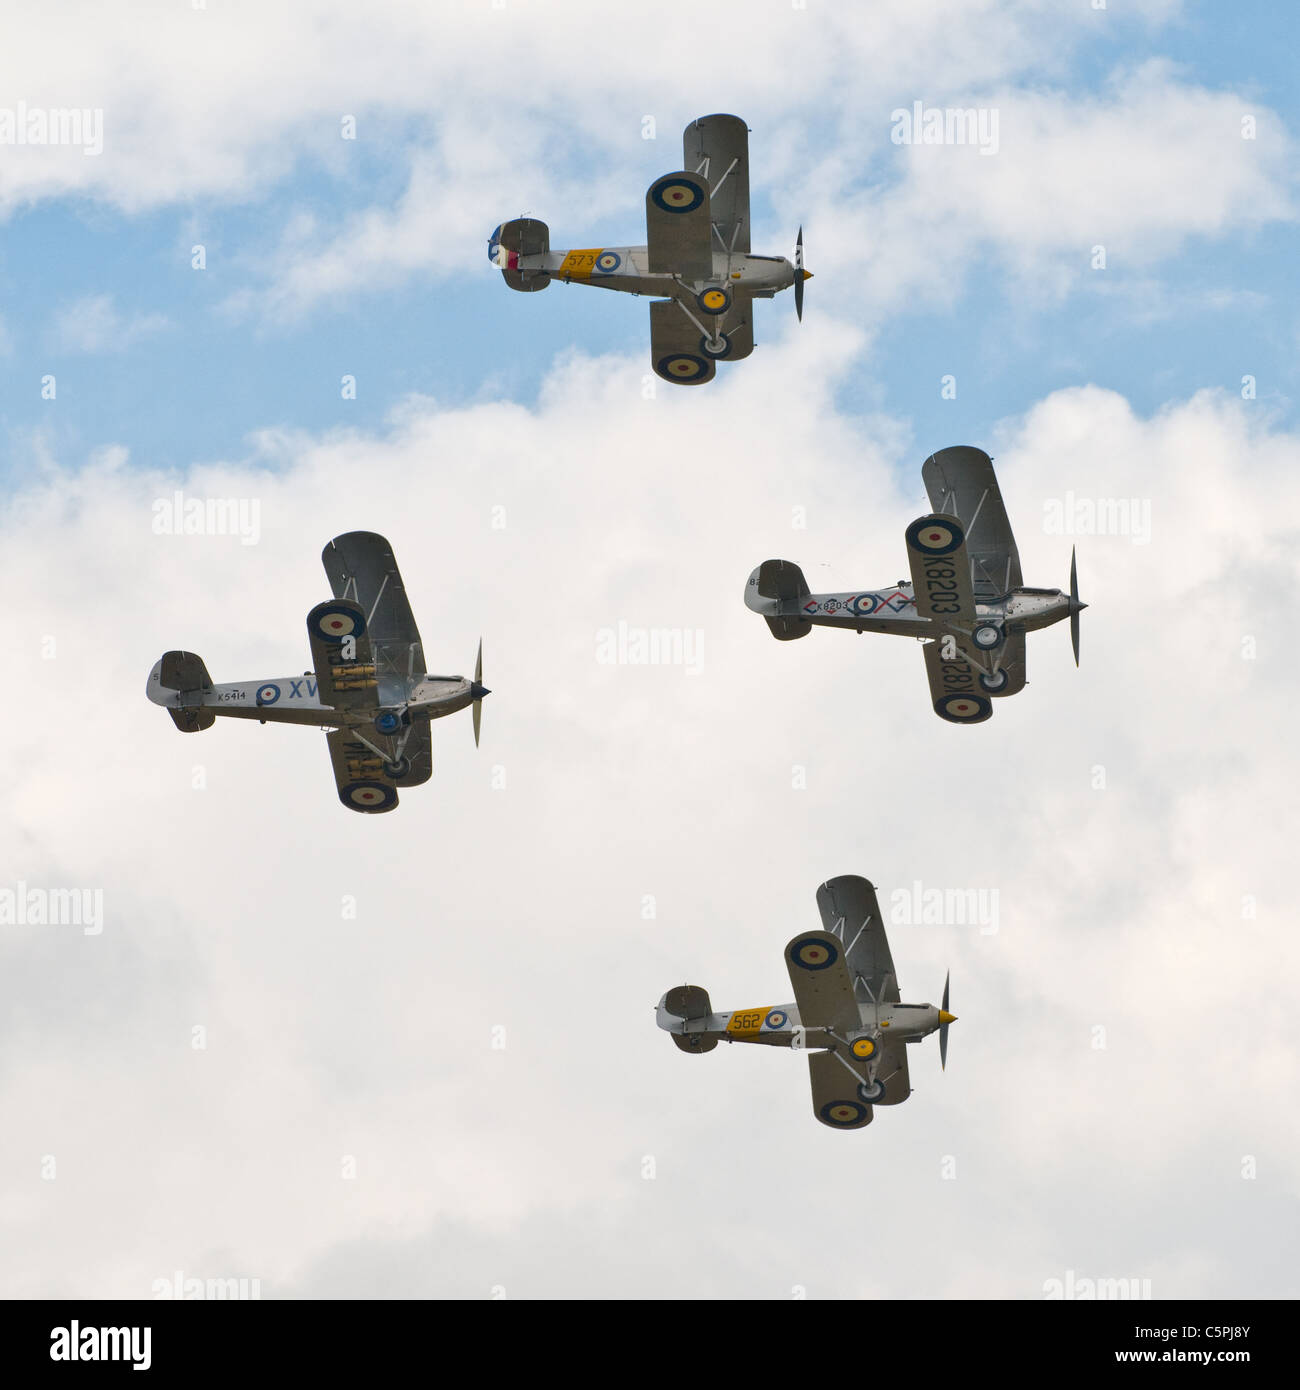 Four vintage bi-planes flying in formation, Duxford air show 2011 - Stock Image